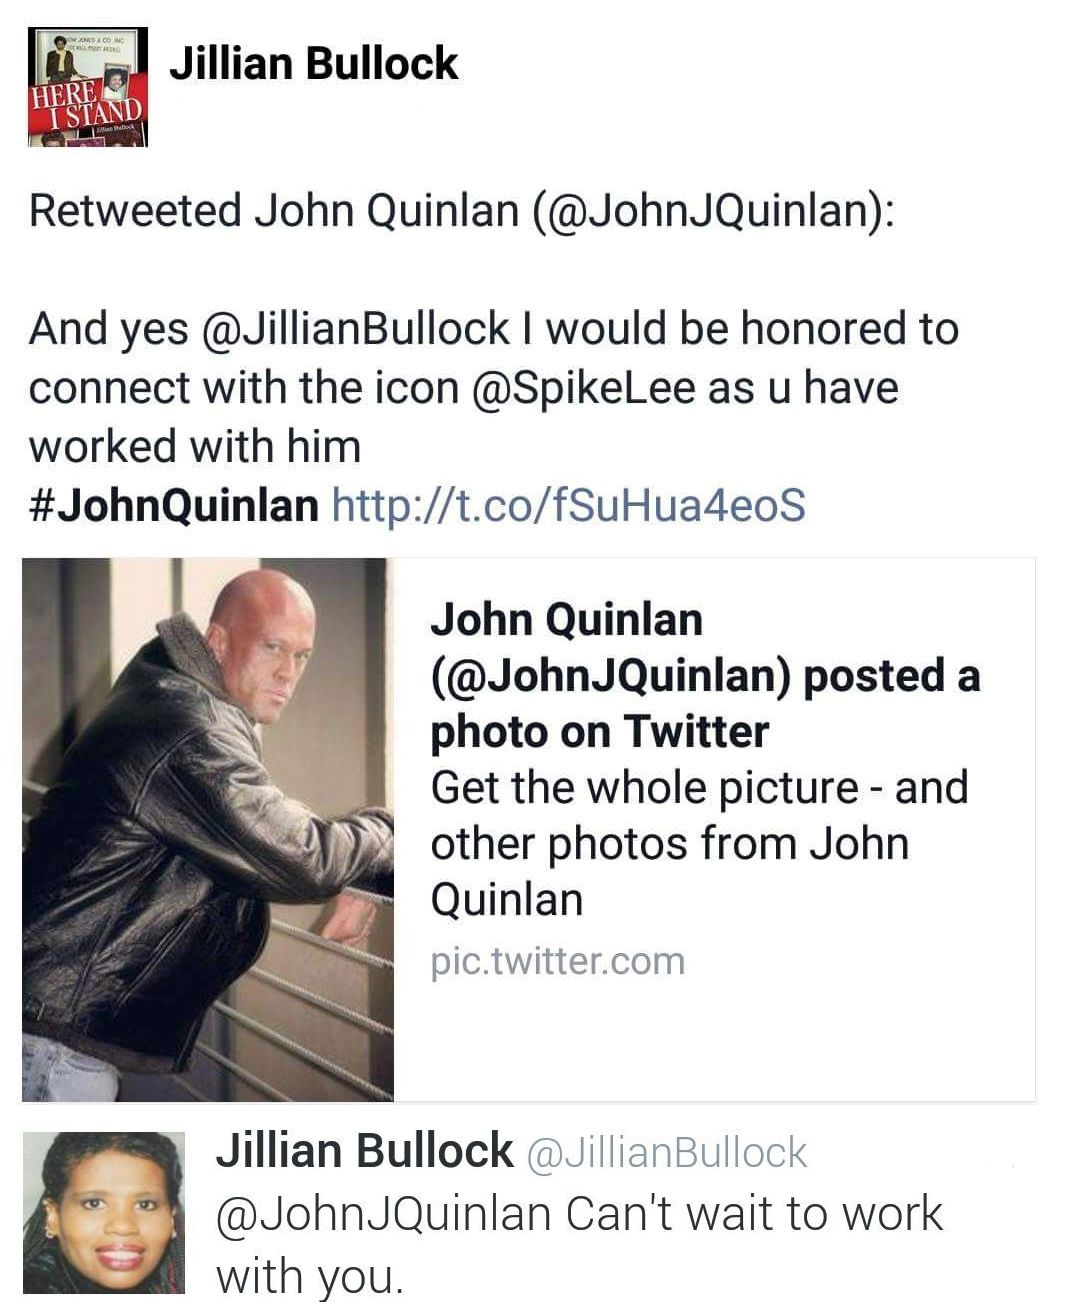 Producer Jillian Bullock & Model Actor John Joseph Quinlan 2016 Film Talk via Twitter #JohnQuinlan